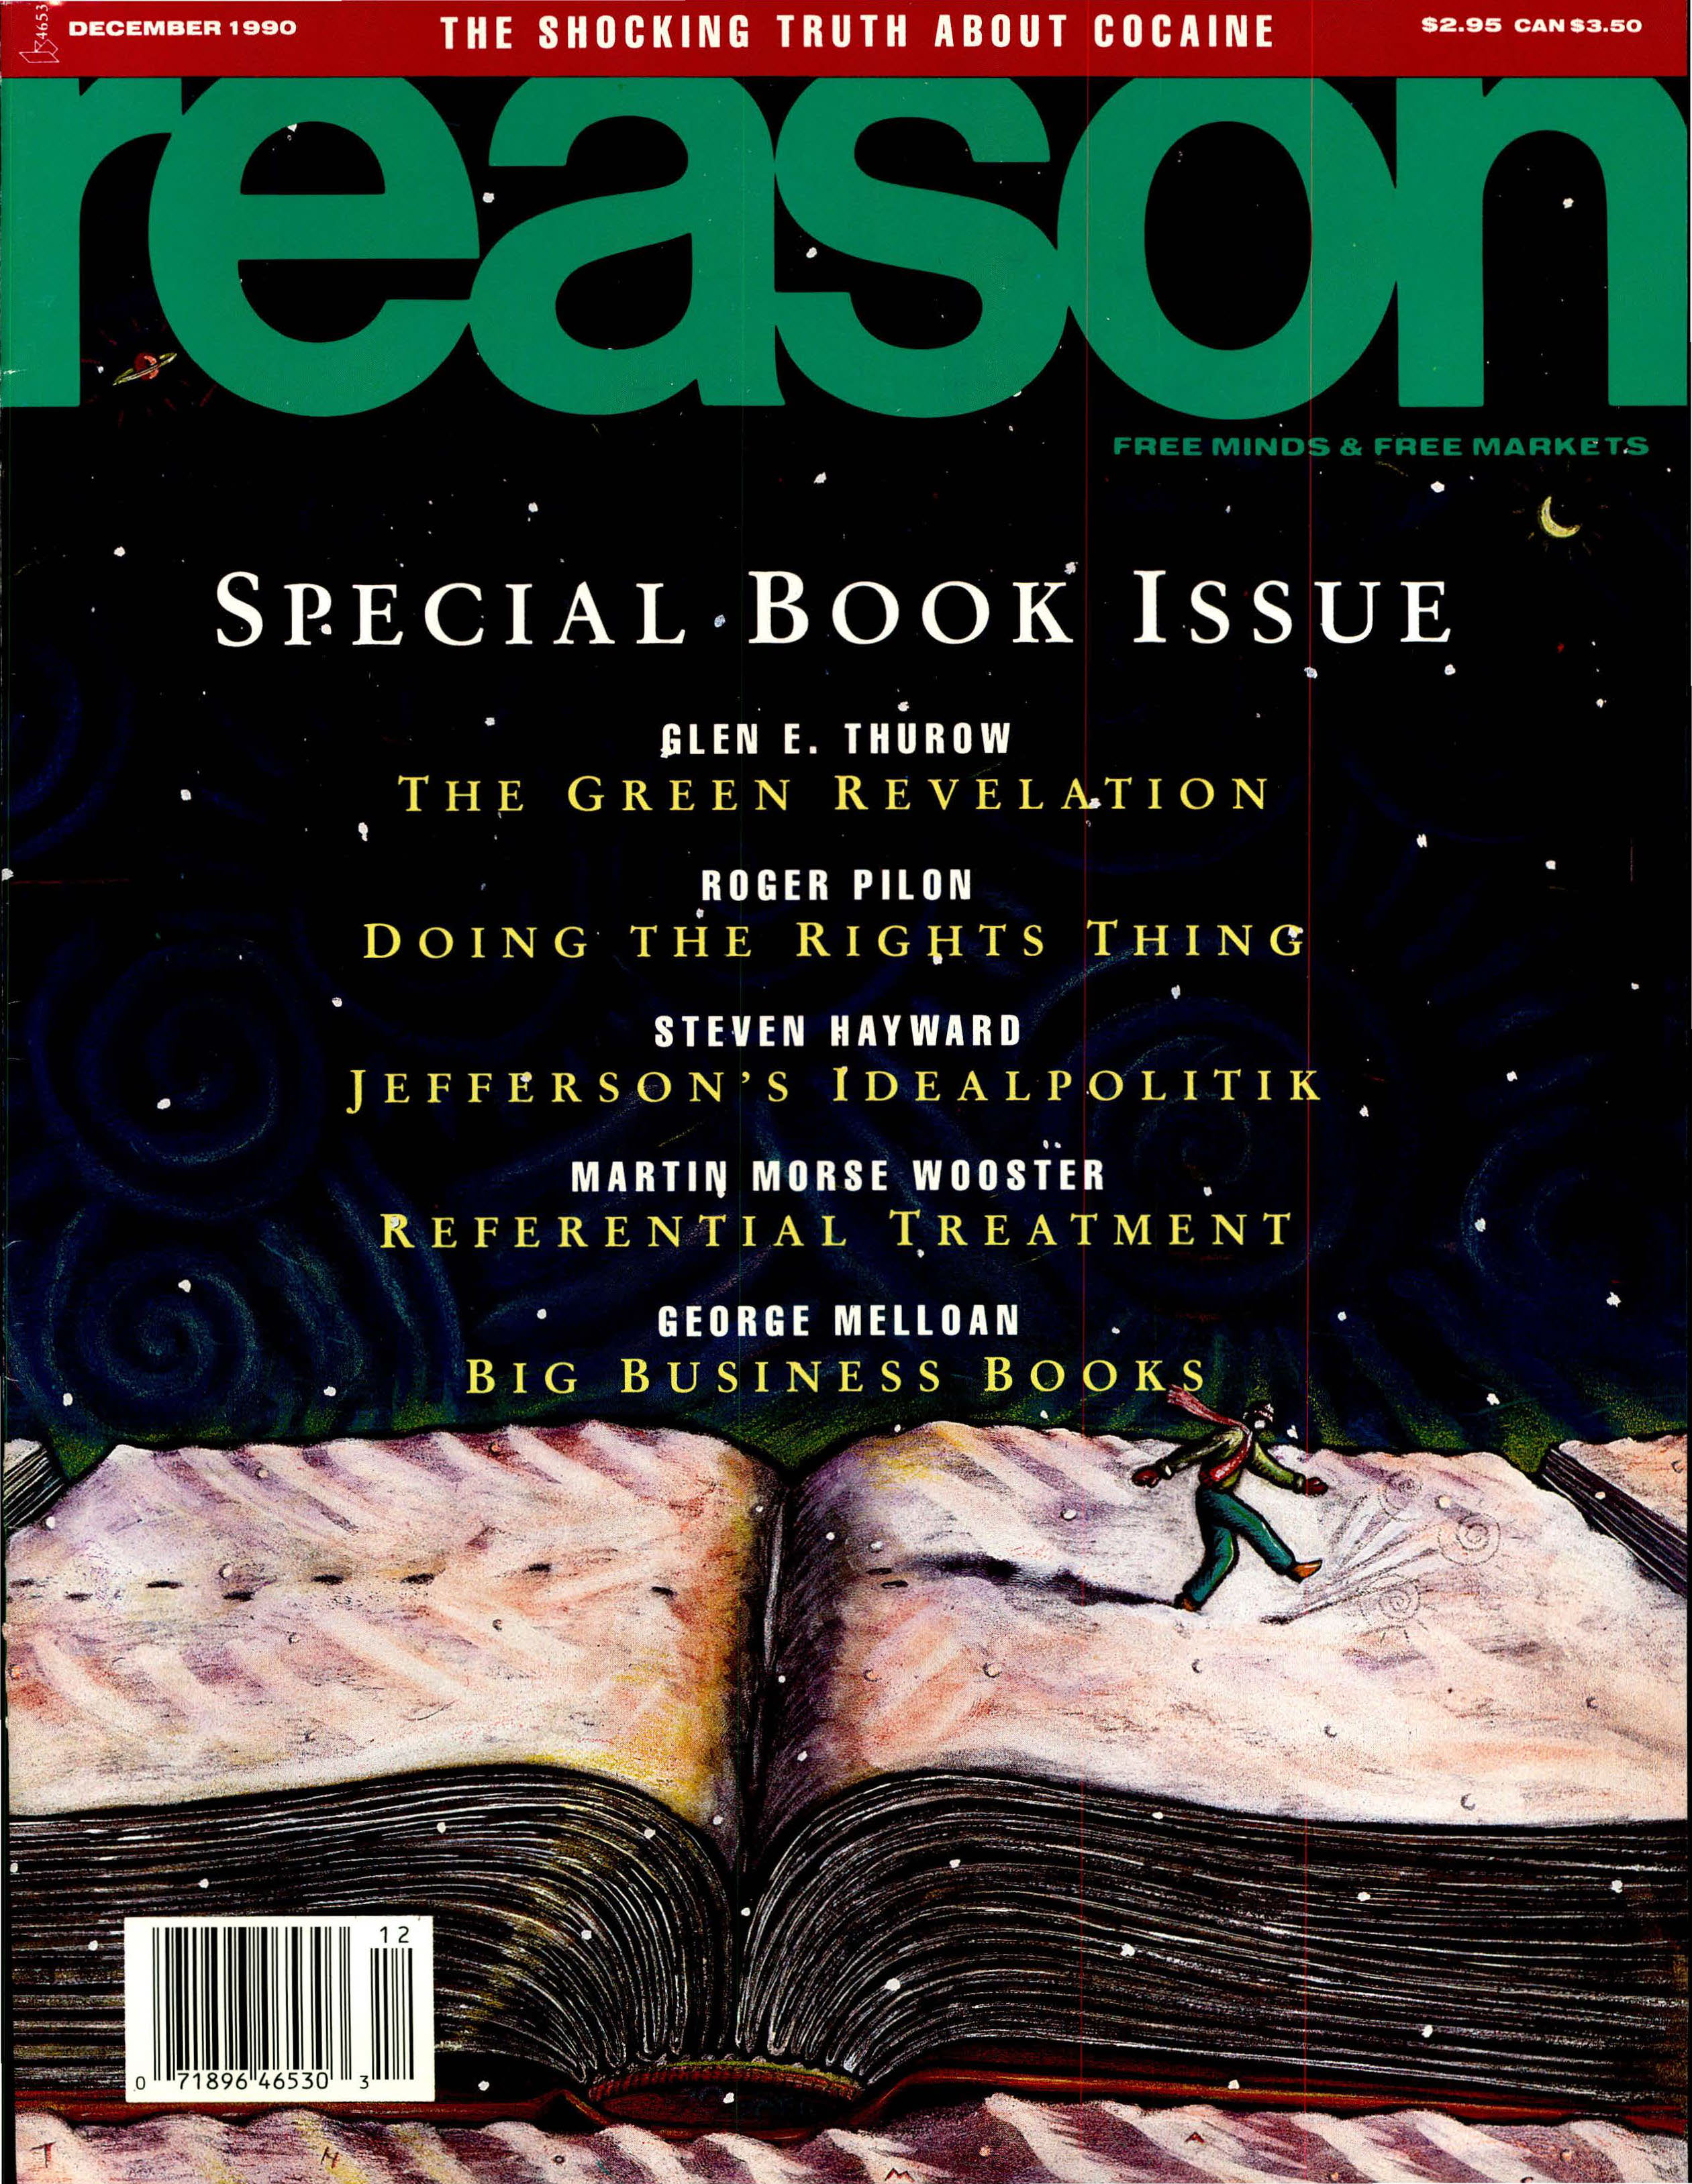 Reason Magazine, December 1990 cover image